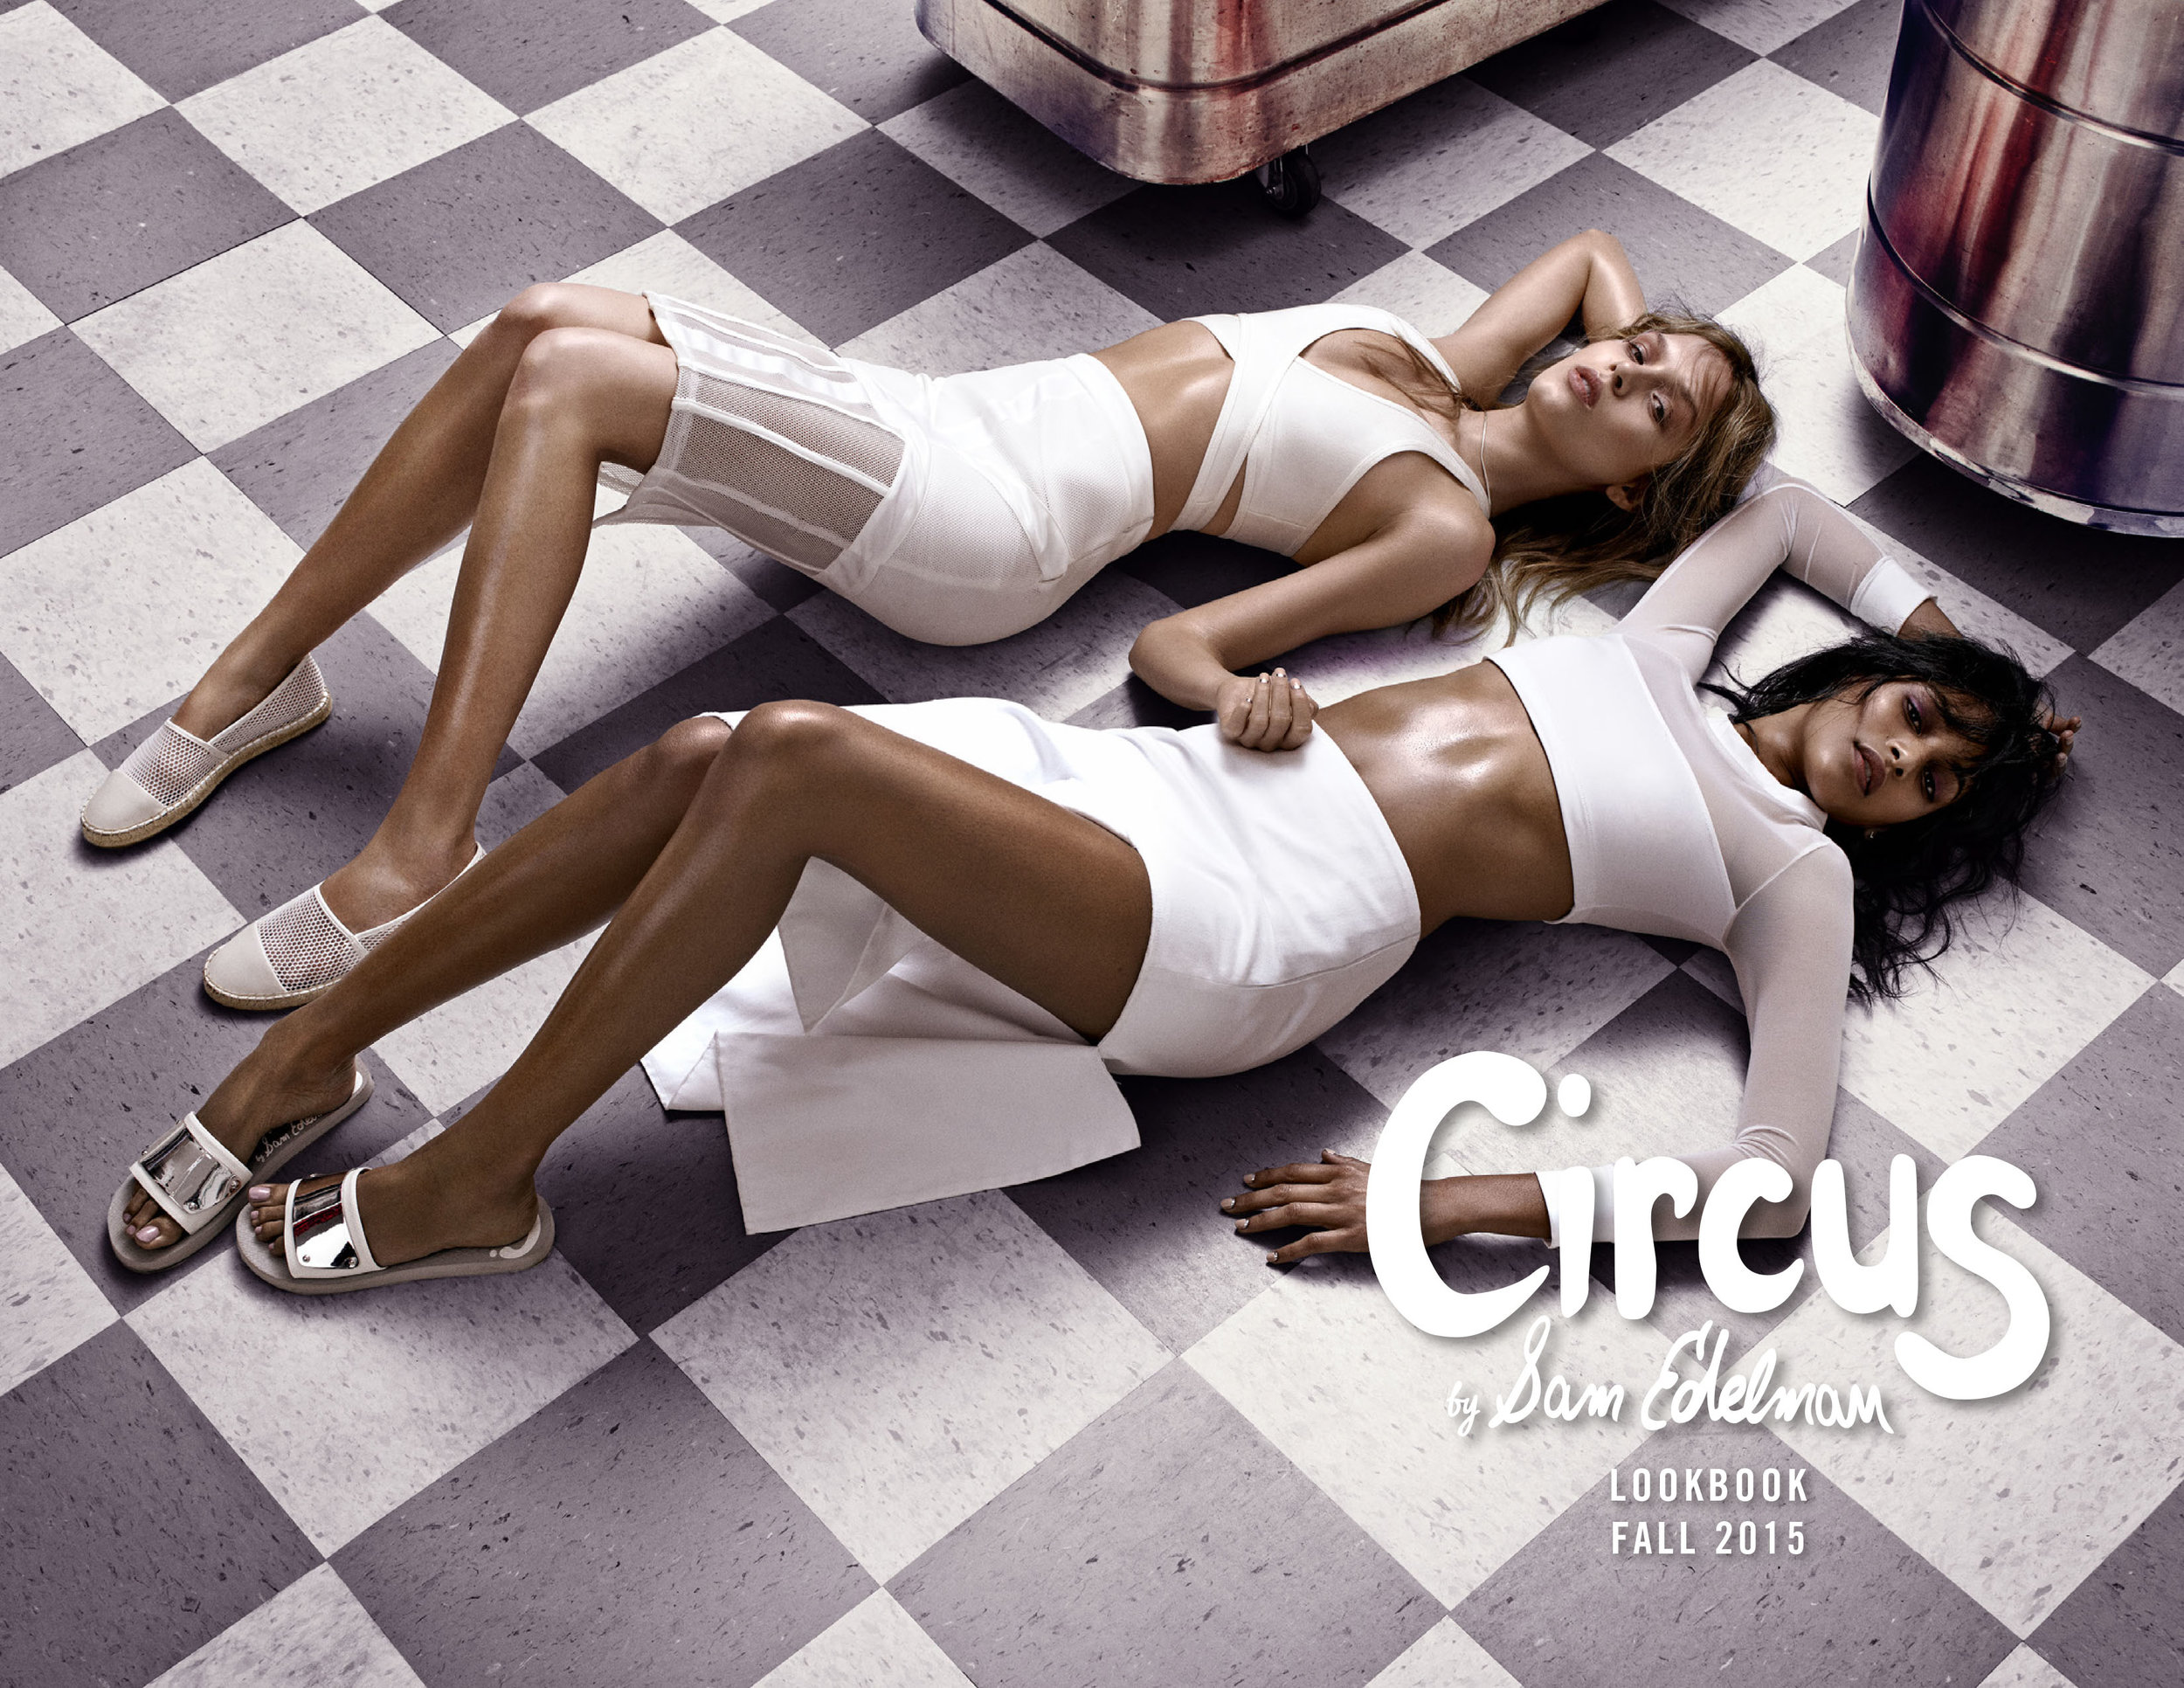 Circus_Lookbook_F15-1.jpg